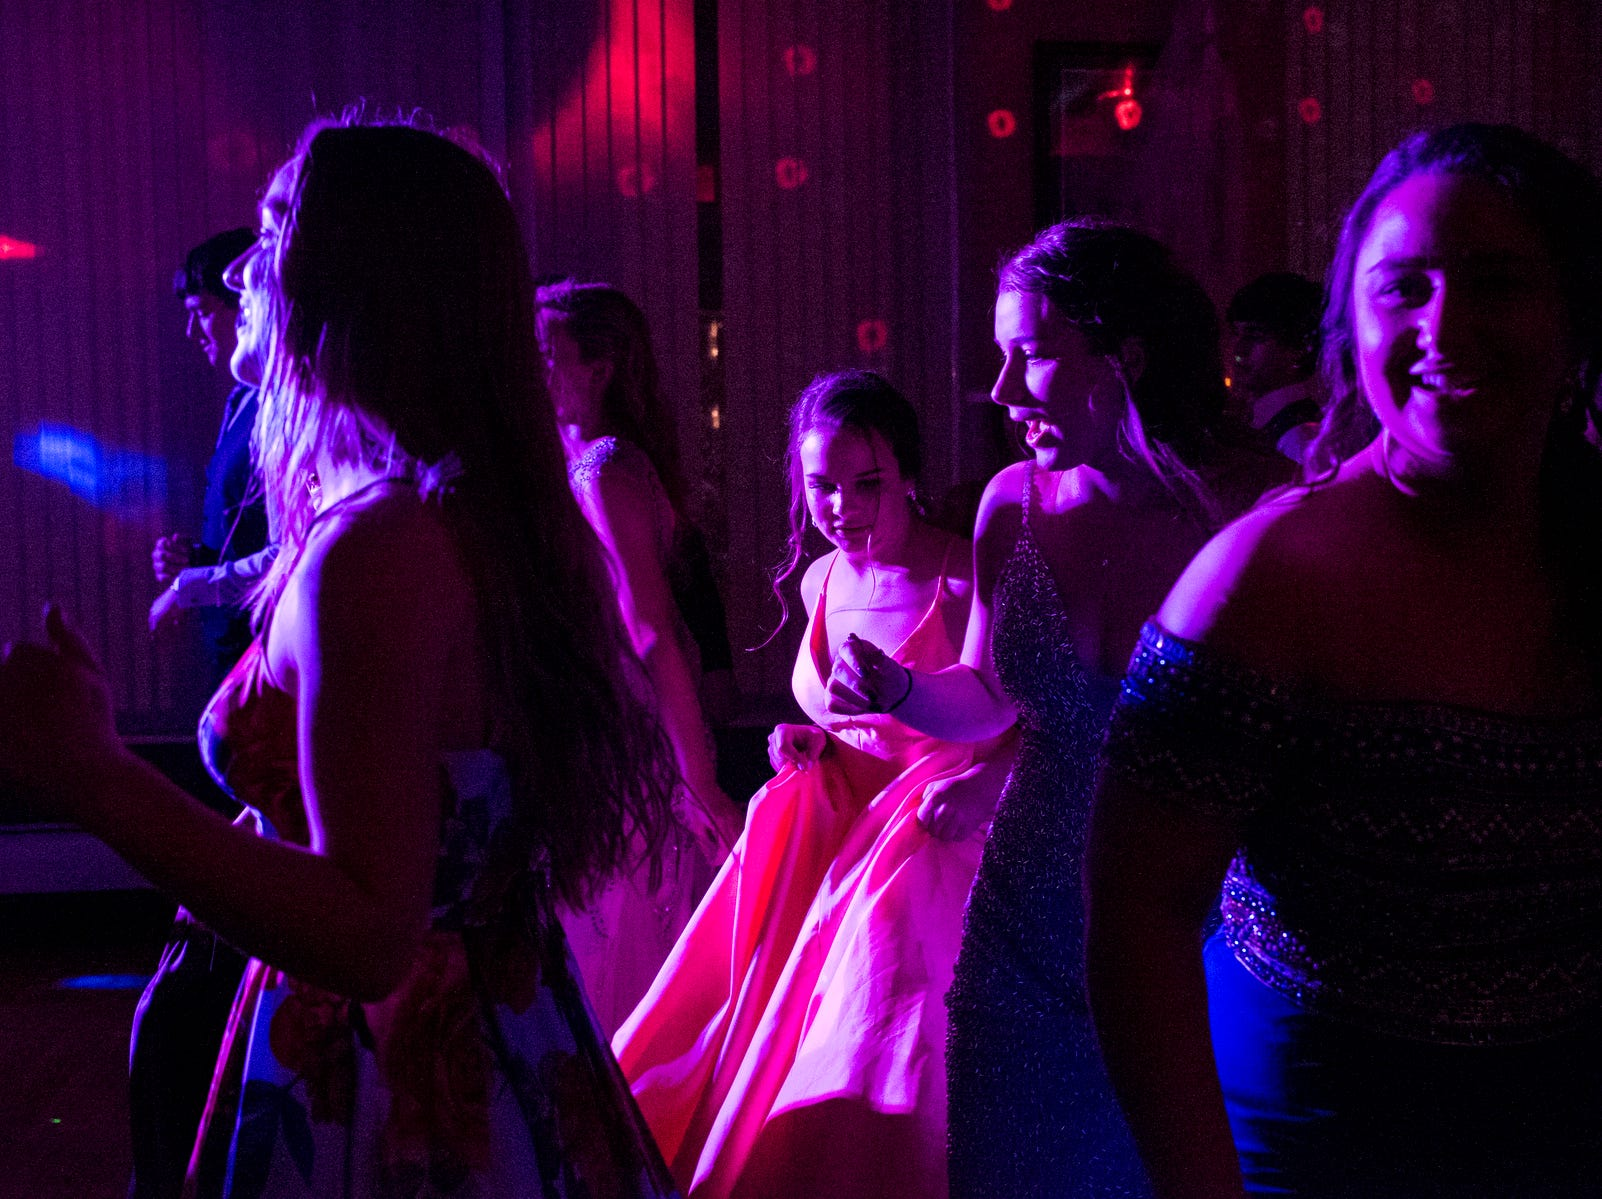 Students dance the night away during Evansville Day School's prom held at the Hadi Shrine Banquet Hall in downtown Evansville, Ind., Saturday, April 27, 2019.